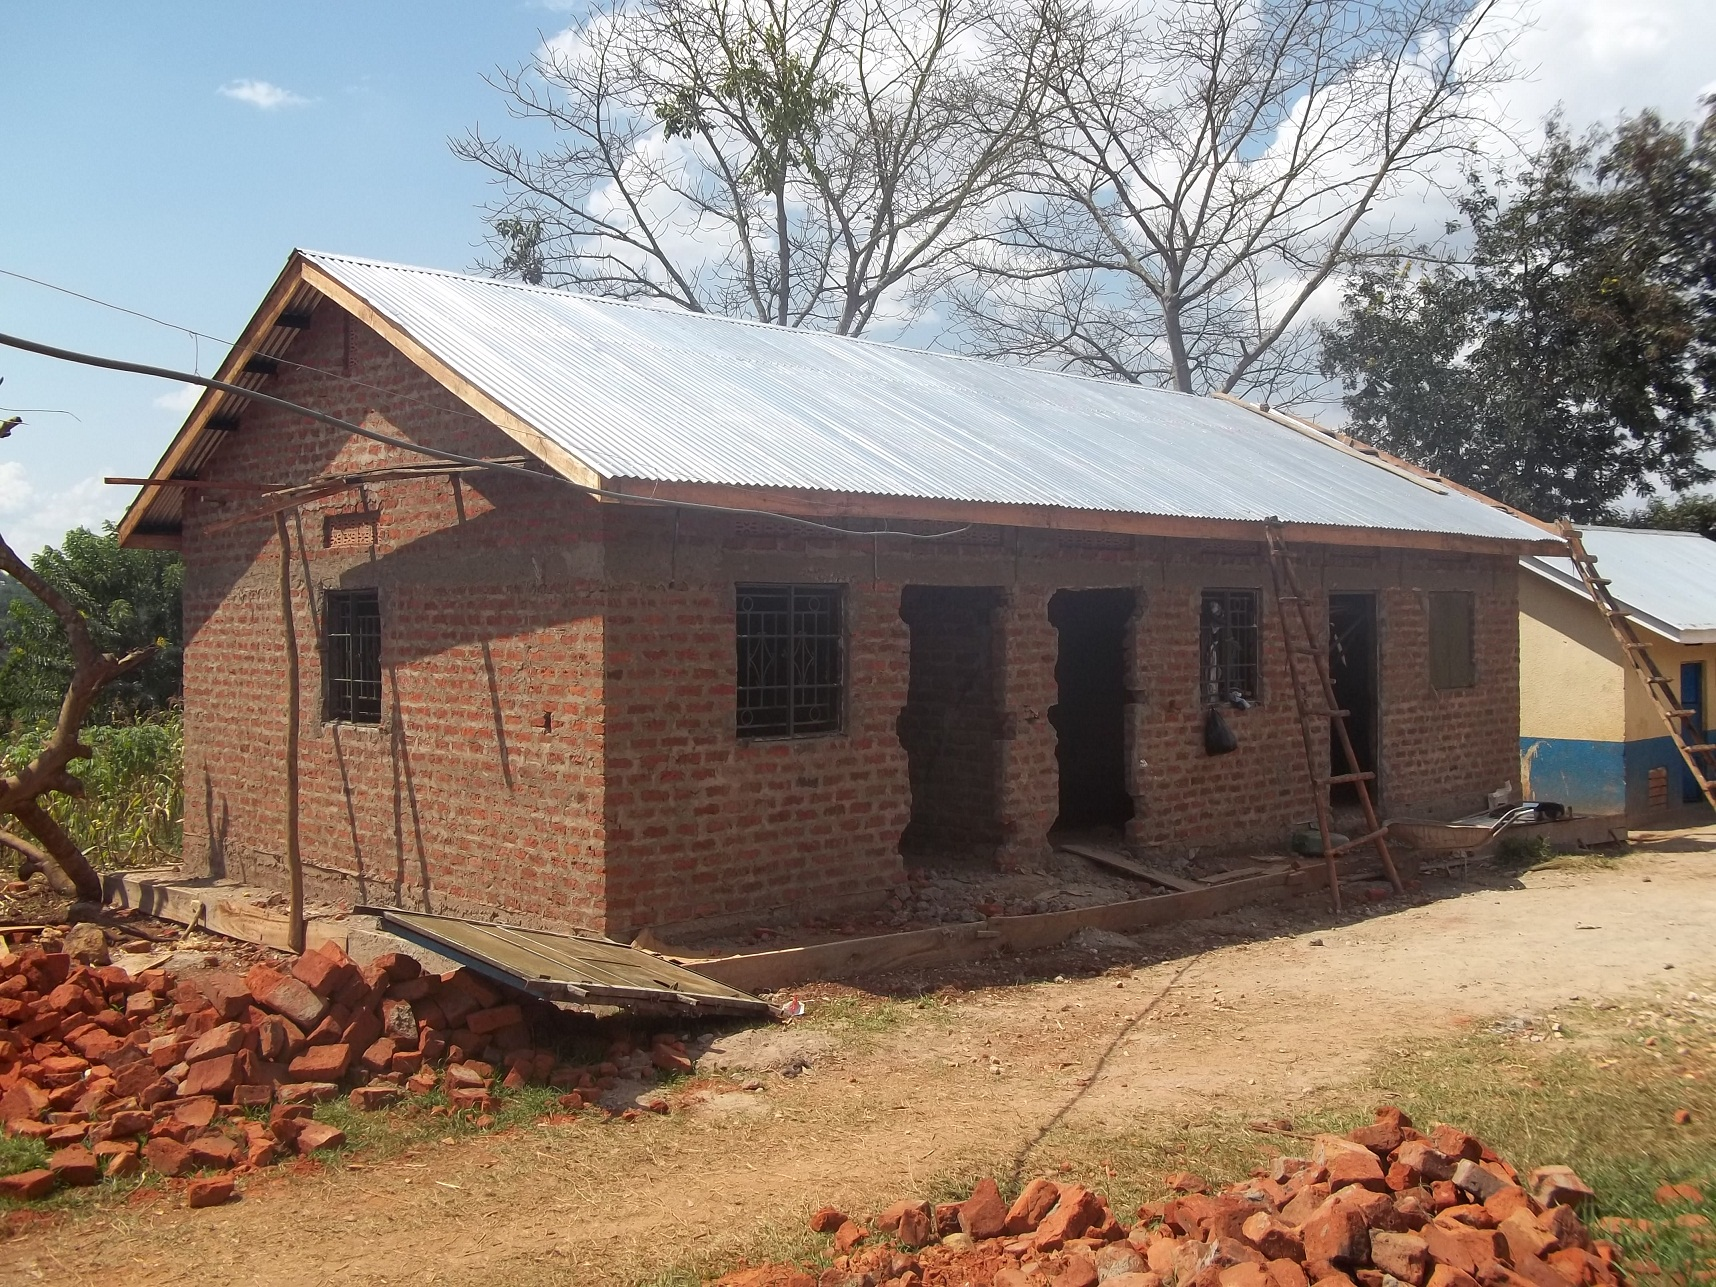 Brick By Mud Brick Andy And Linda Blog A Year 39 S Construction In East Africa